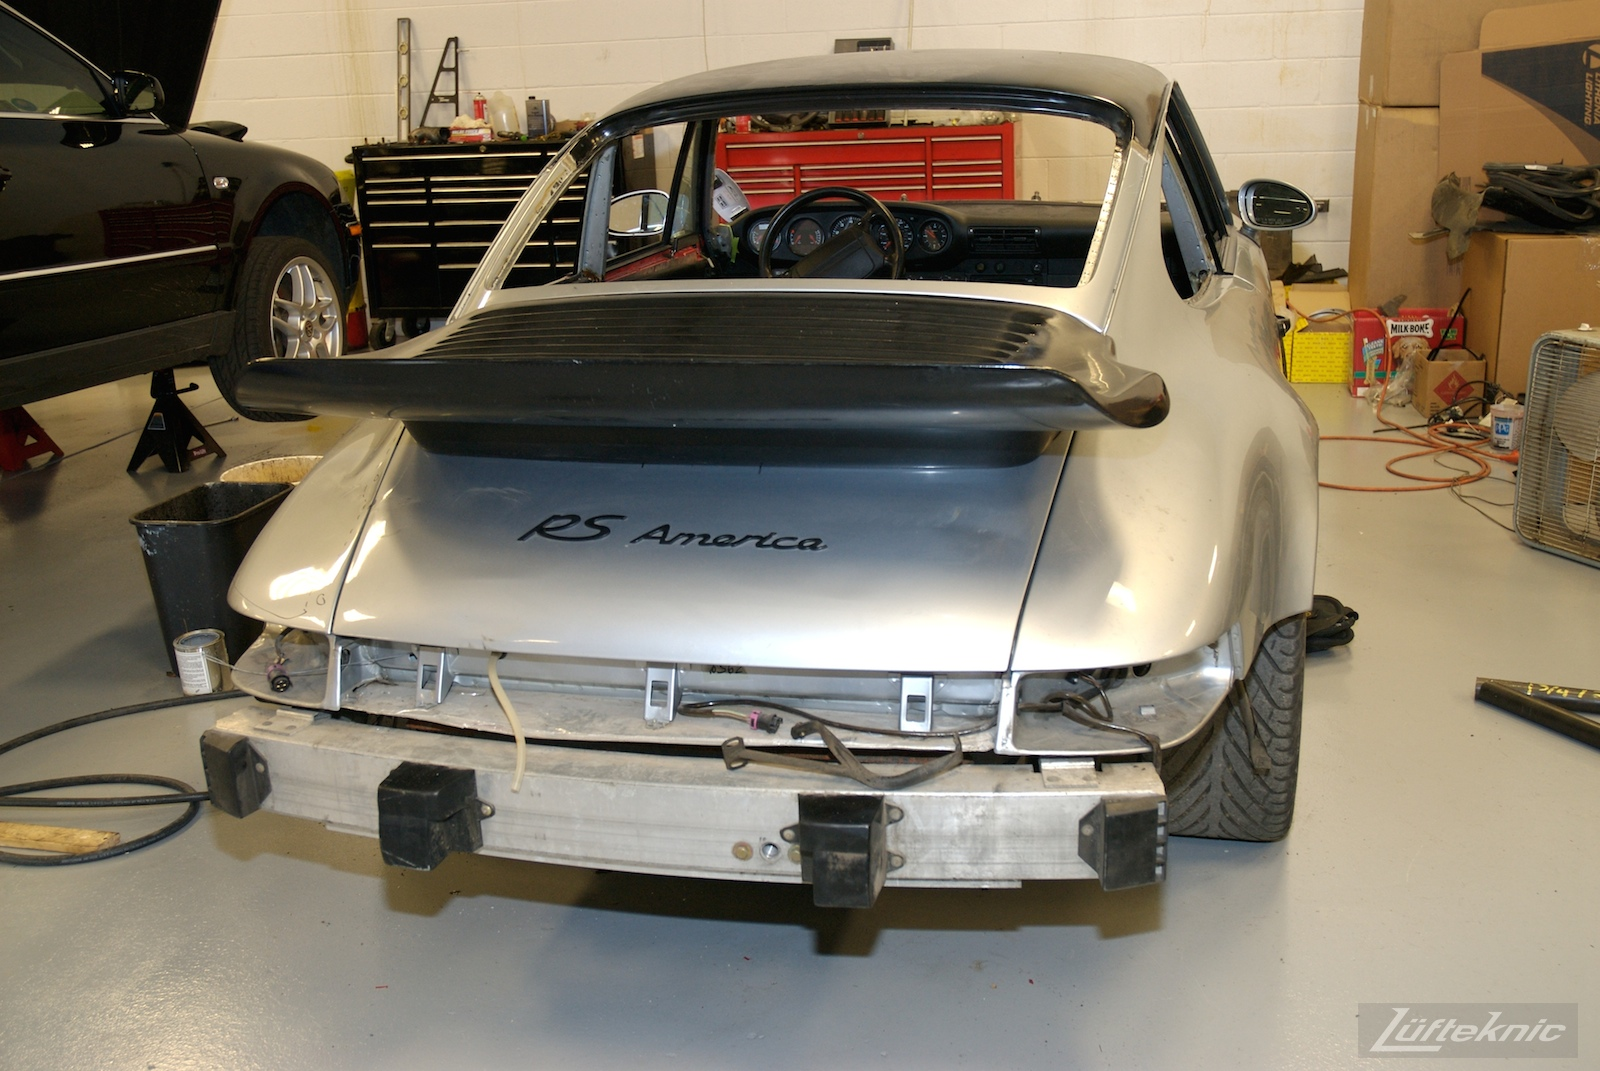 Panels fitted but still no glass on the 964 RS America project